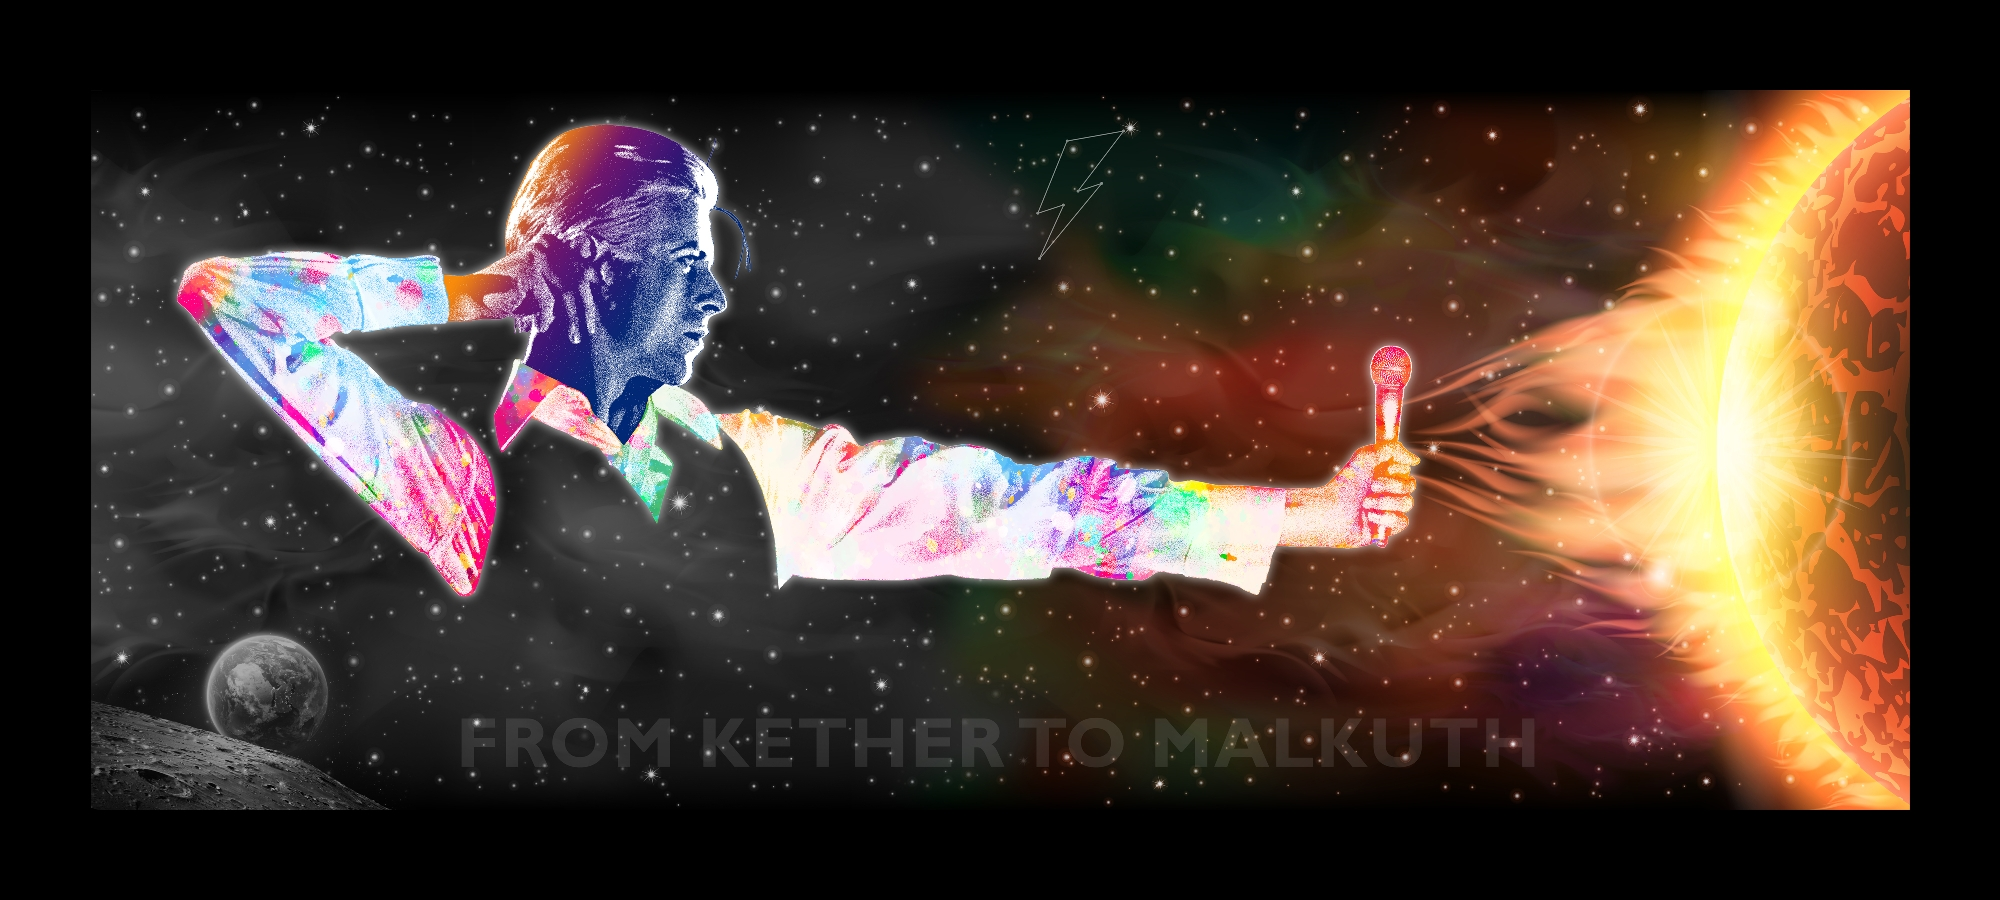 David Bowie Art Creation by Steve Stachin - From Kether To Malkuth 400cm x 180cm